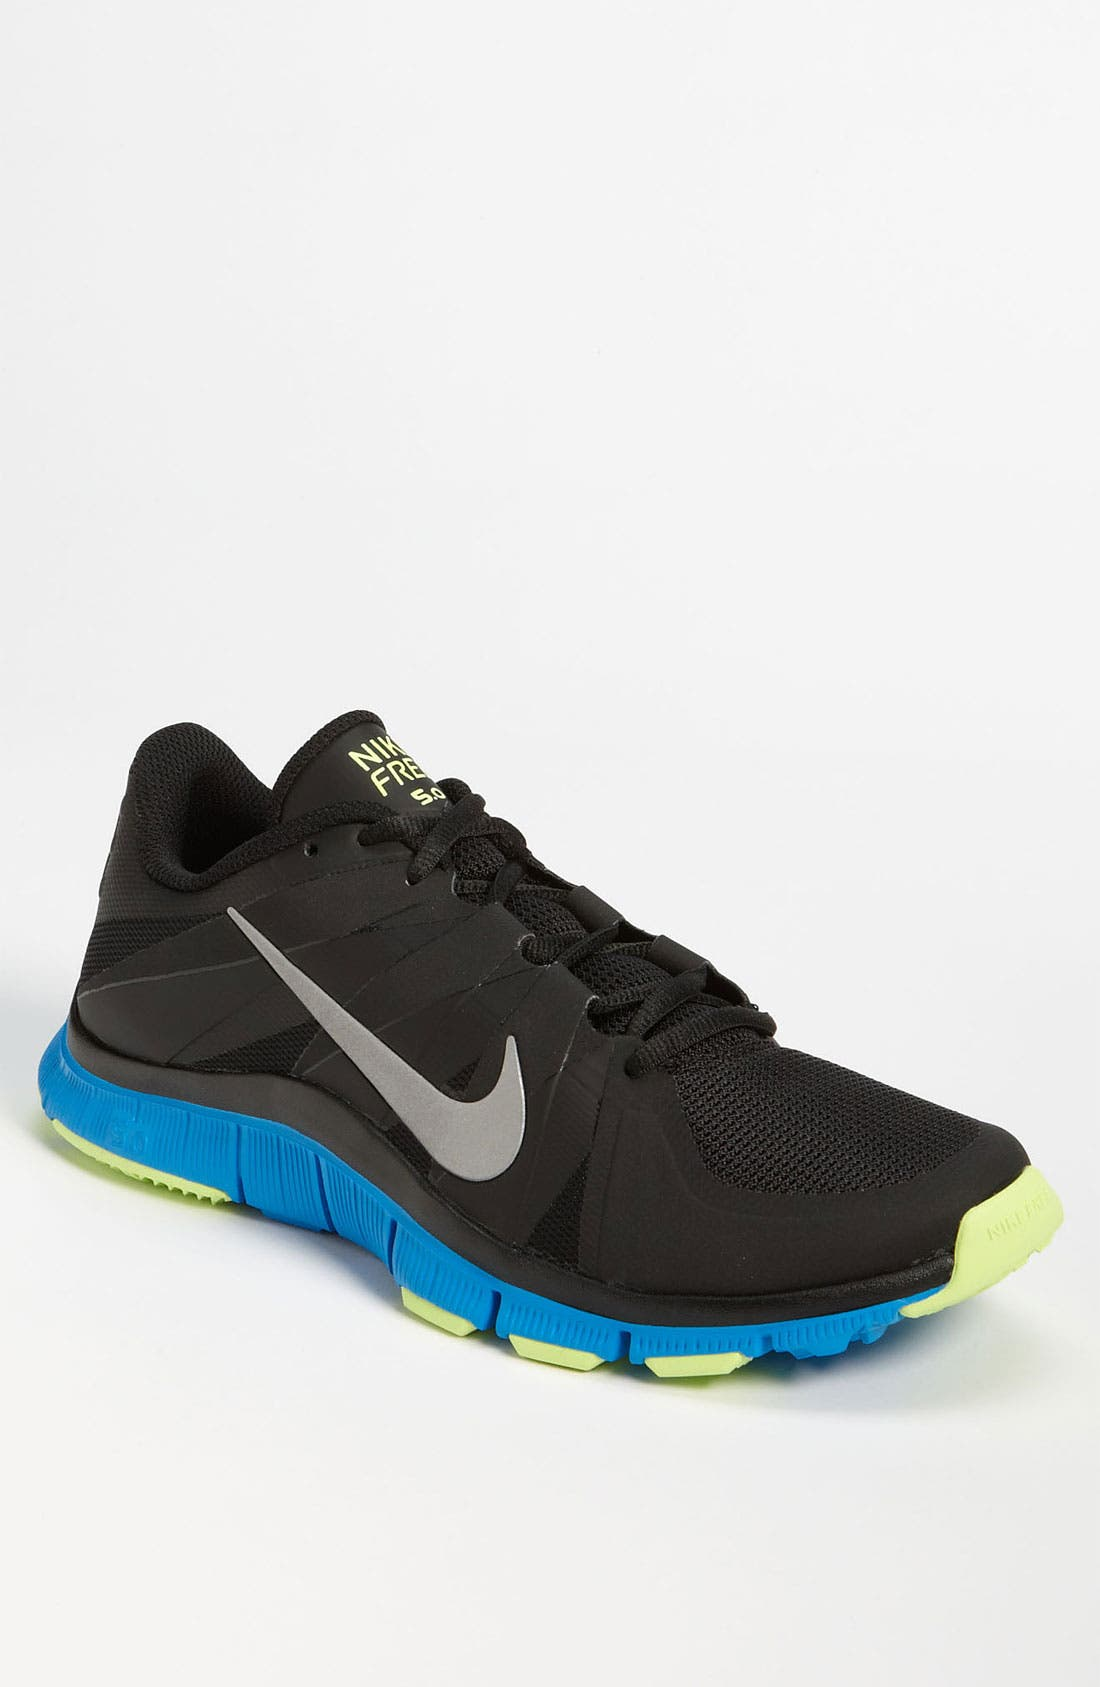 Main Image - Nike 'Free Trainer' Training Shoe (Men)